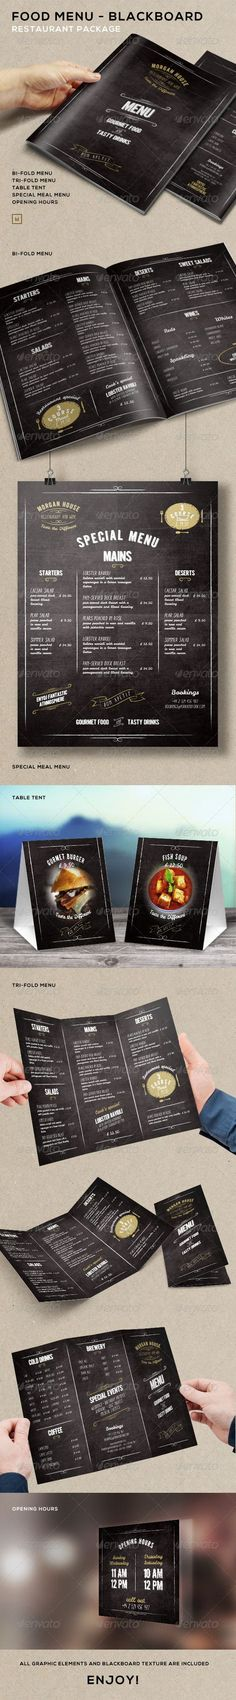 Food Menu - BlackBoard Restaurant Package:                                                                                                                                                      More